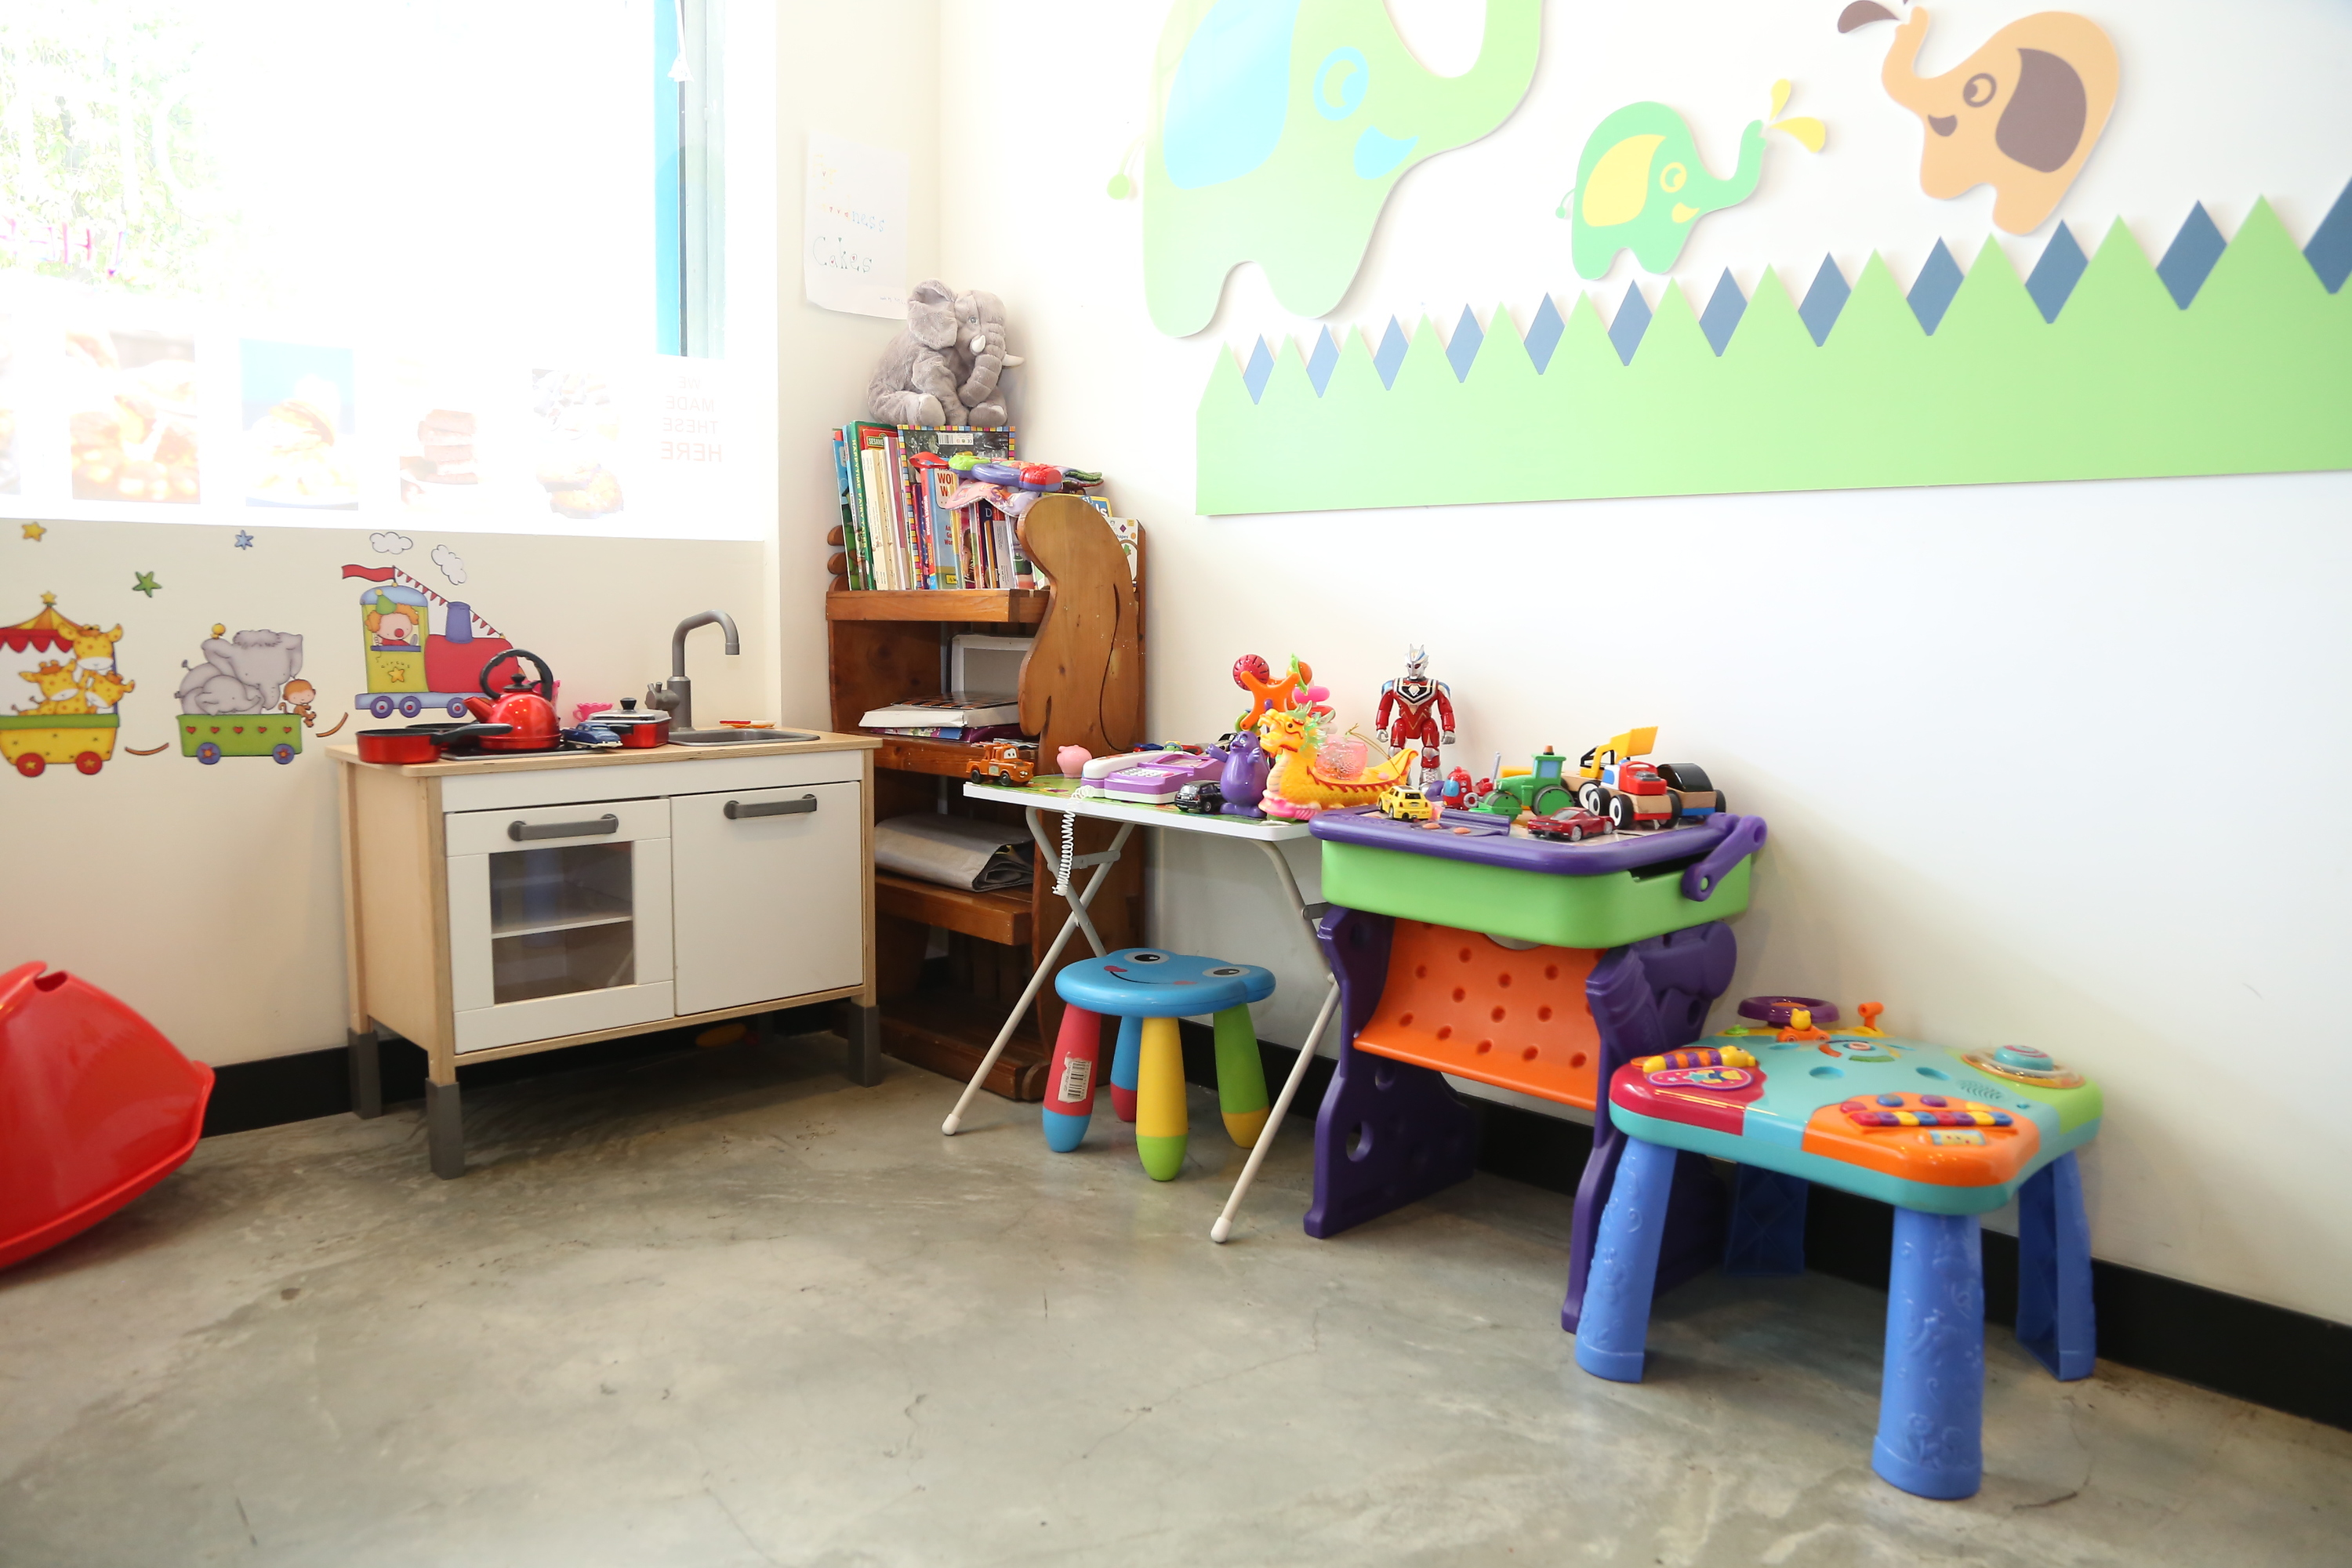 cakes; cafe; play area